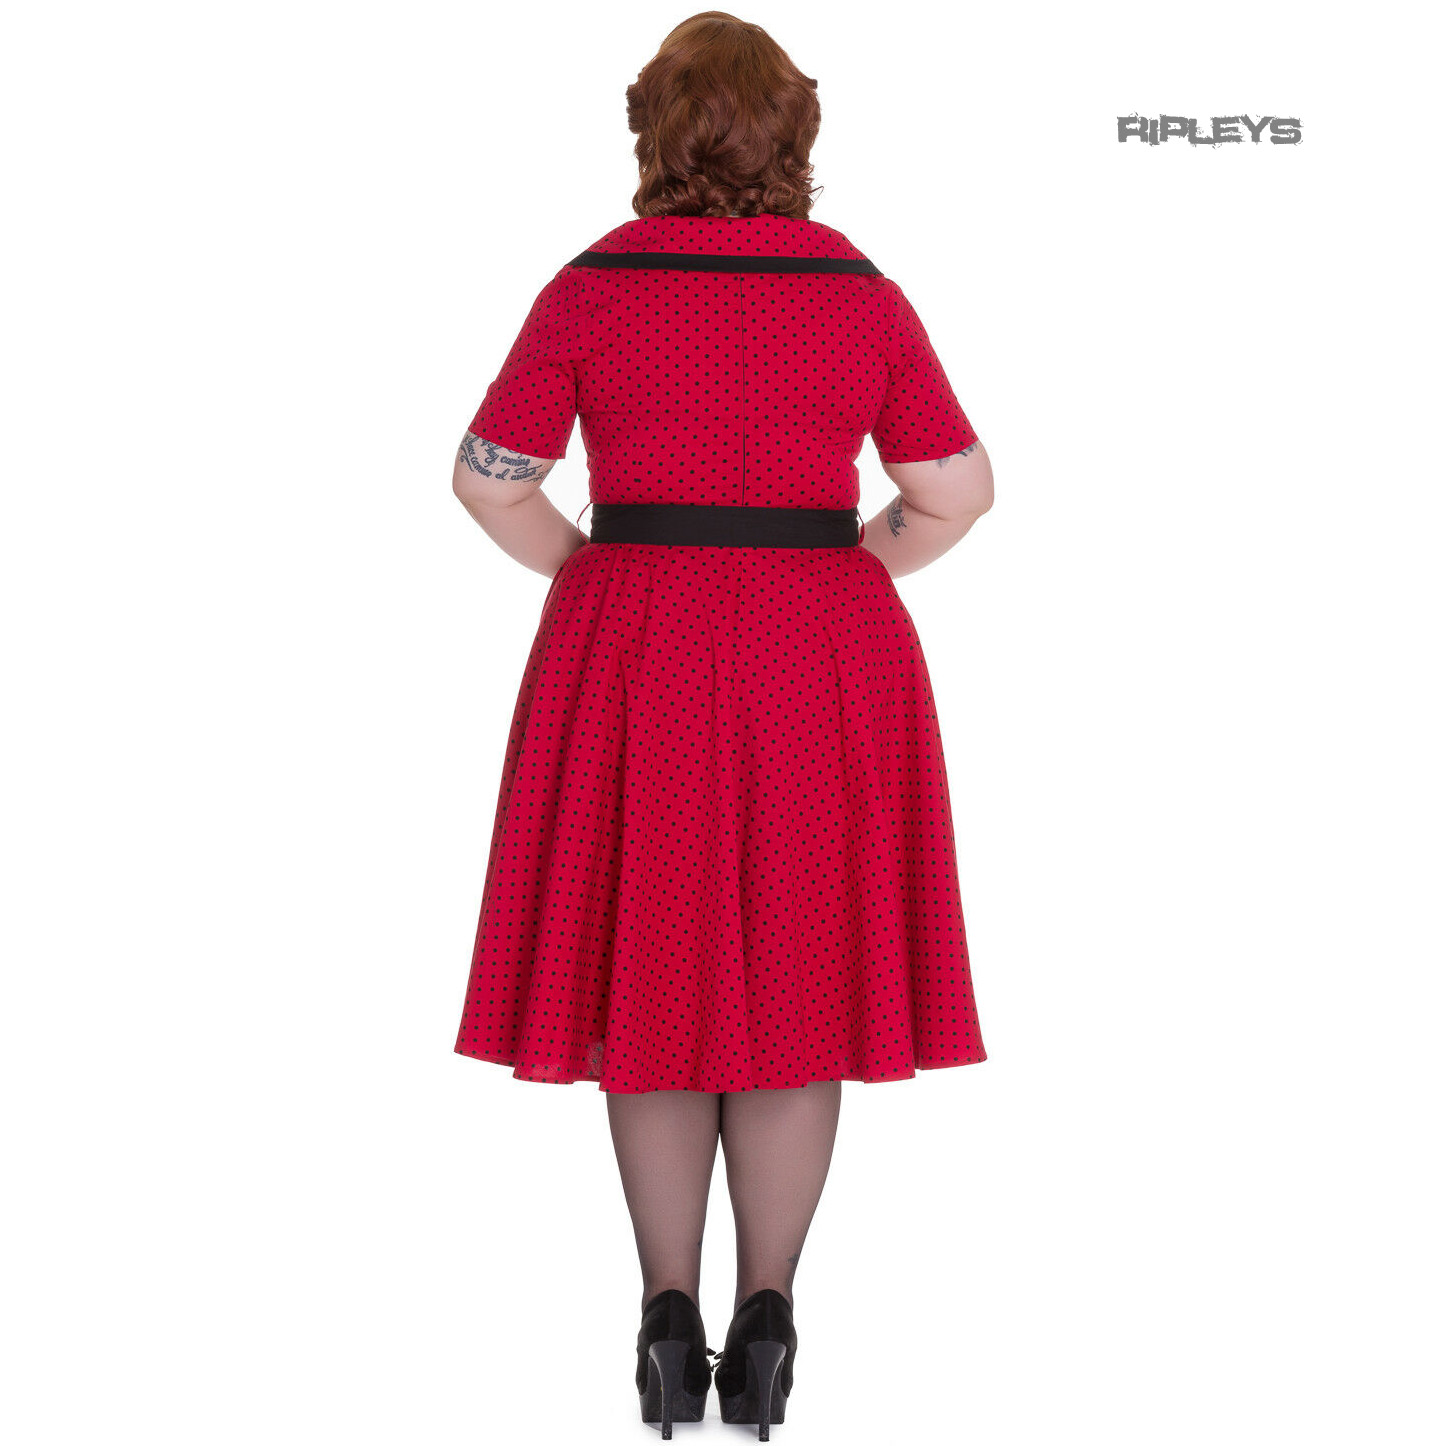 Hell-Bunny-40s-50s-Pin-Up-Swing-Dress-MIMI-Polka-Dot-Black-Red-All-Sizes thumbnail 8